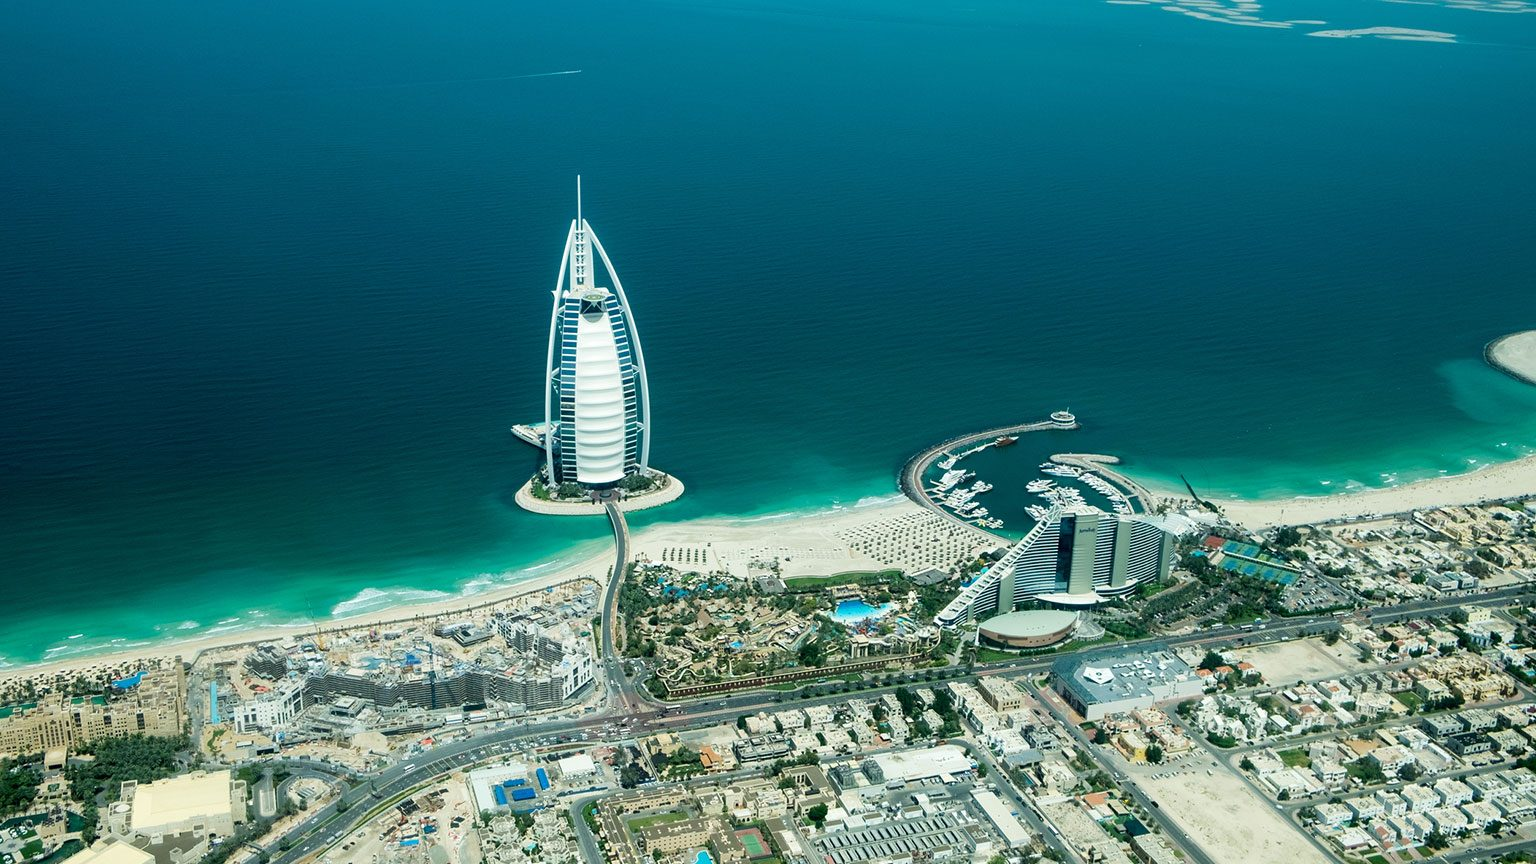 Aerial view of Dubai city, beach and shoreline